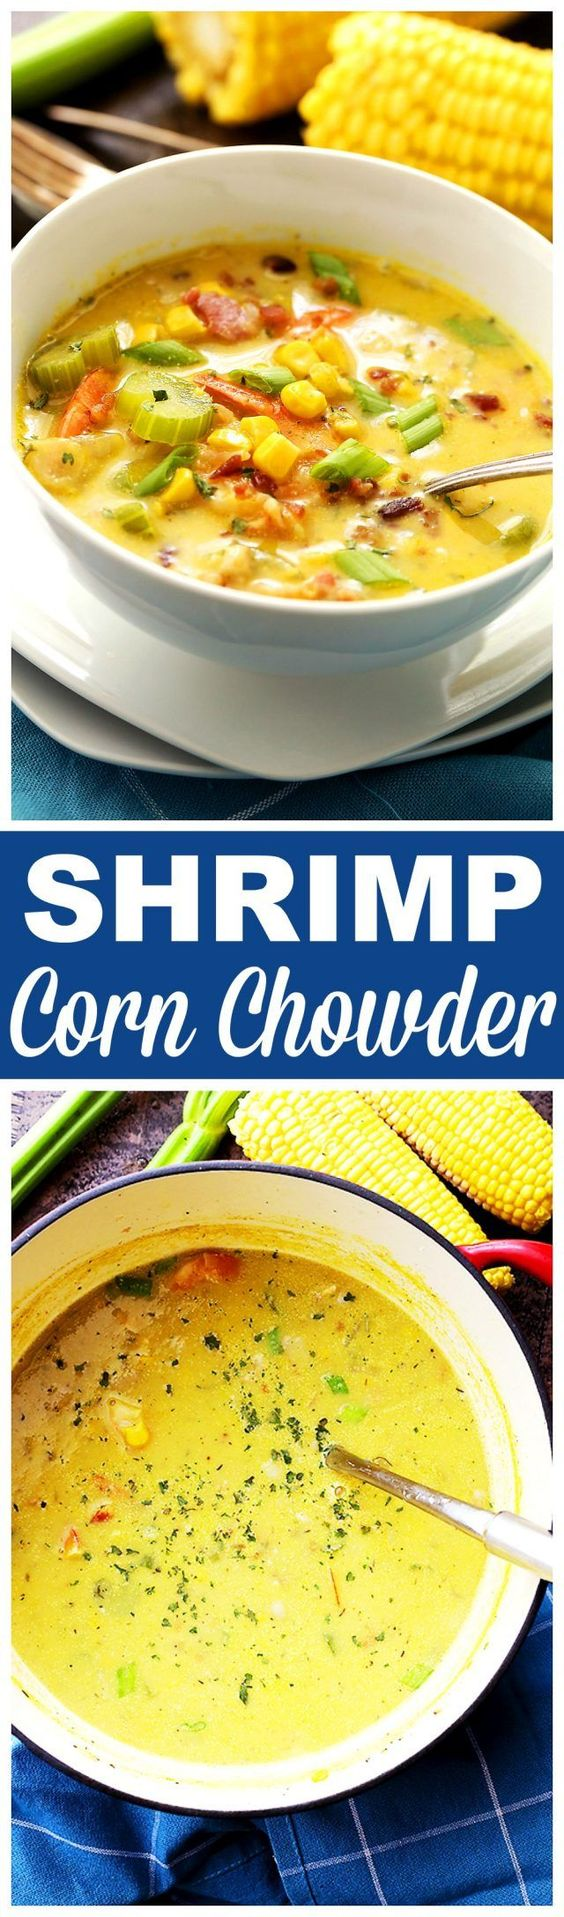 Shrimp corn chowder, Corn chowder and Chowders on Pinterest